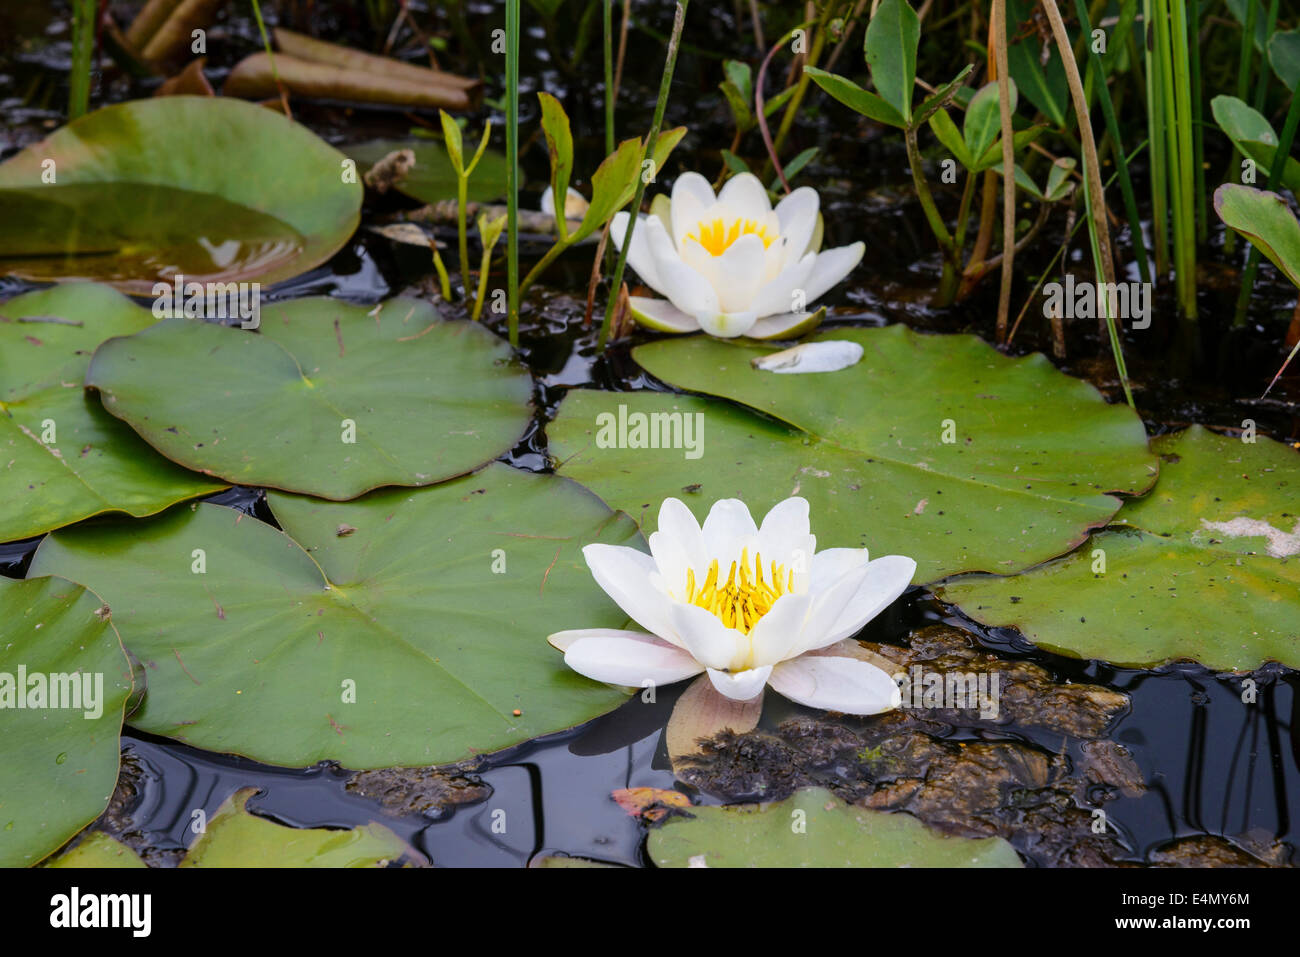 White Water-lily, Nymphaea alba, Wildflower - Stock Image